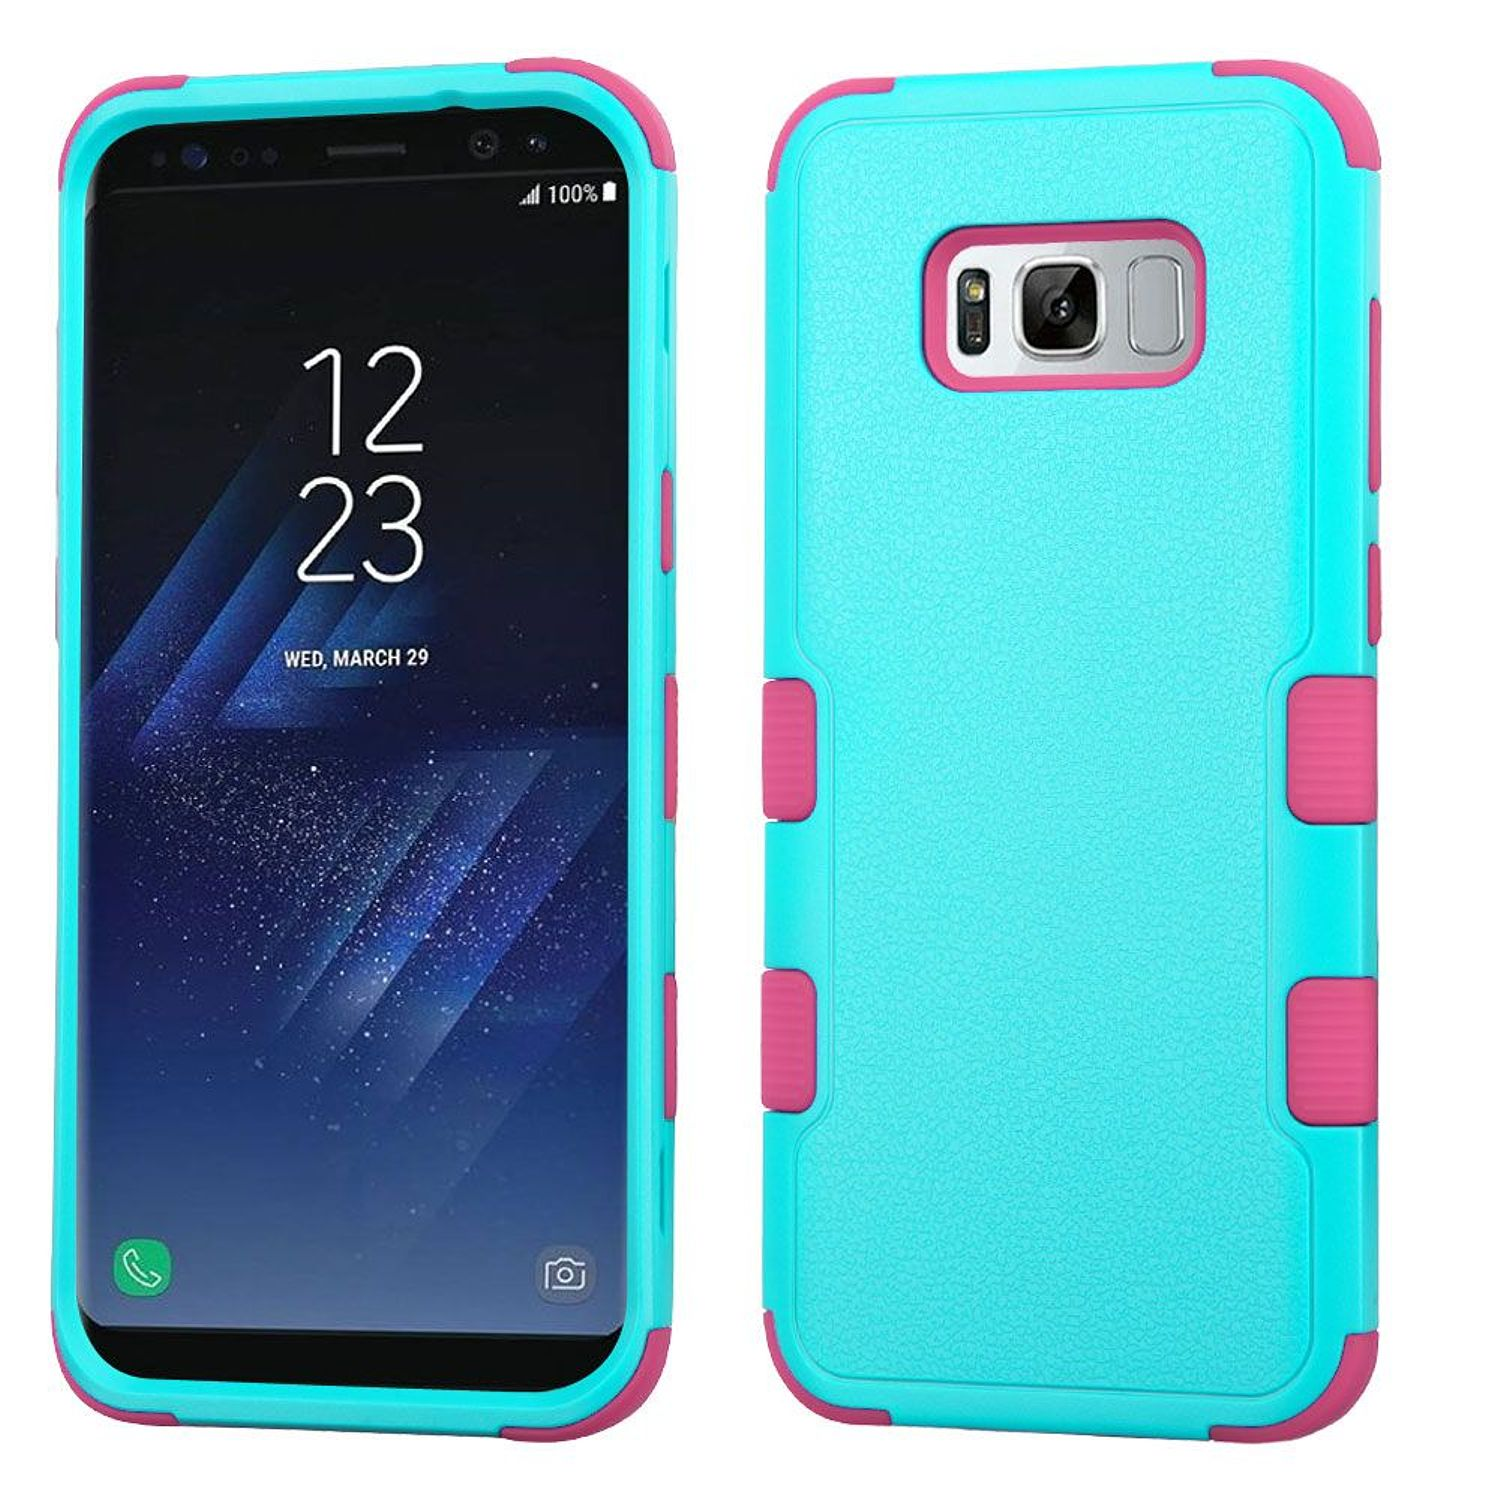 Insten Tuff Dual Layer [Shock Absorbing] Hybrid Rubberized Hard Plastic/Soft Silicone Case Cover For Samsung Galaxy S8 Plus S8+, Teal/Pink